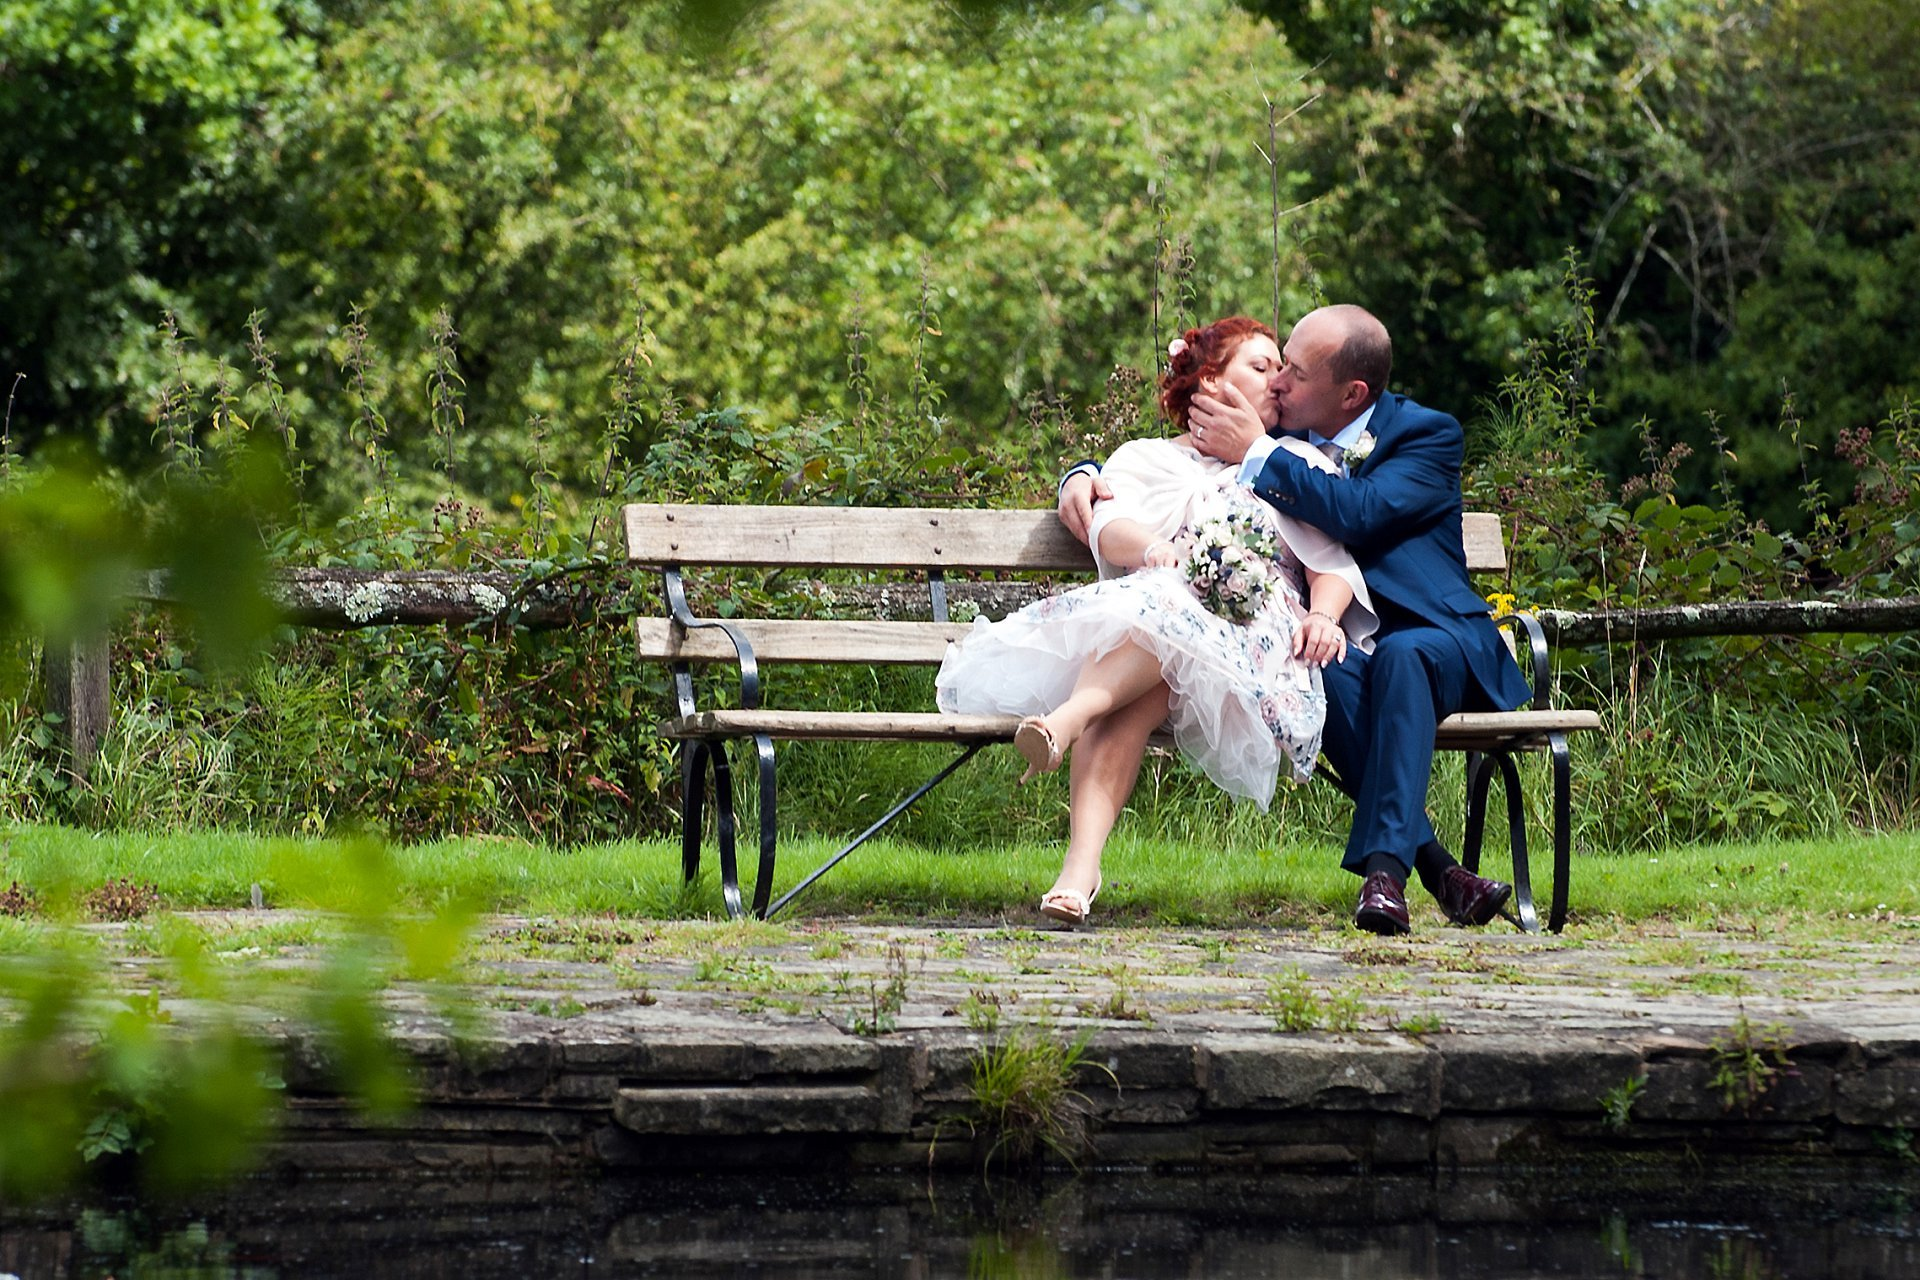 Ghyll Manor wedding photographer Emma Duggan Photography here photographs a bride and groom by the pond taking a moment to take in their recent civil marriage ceremony at nearby Park House in Horsham